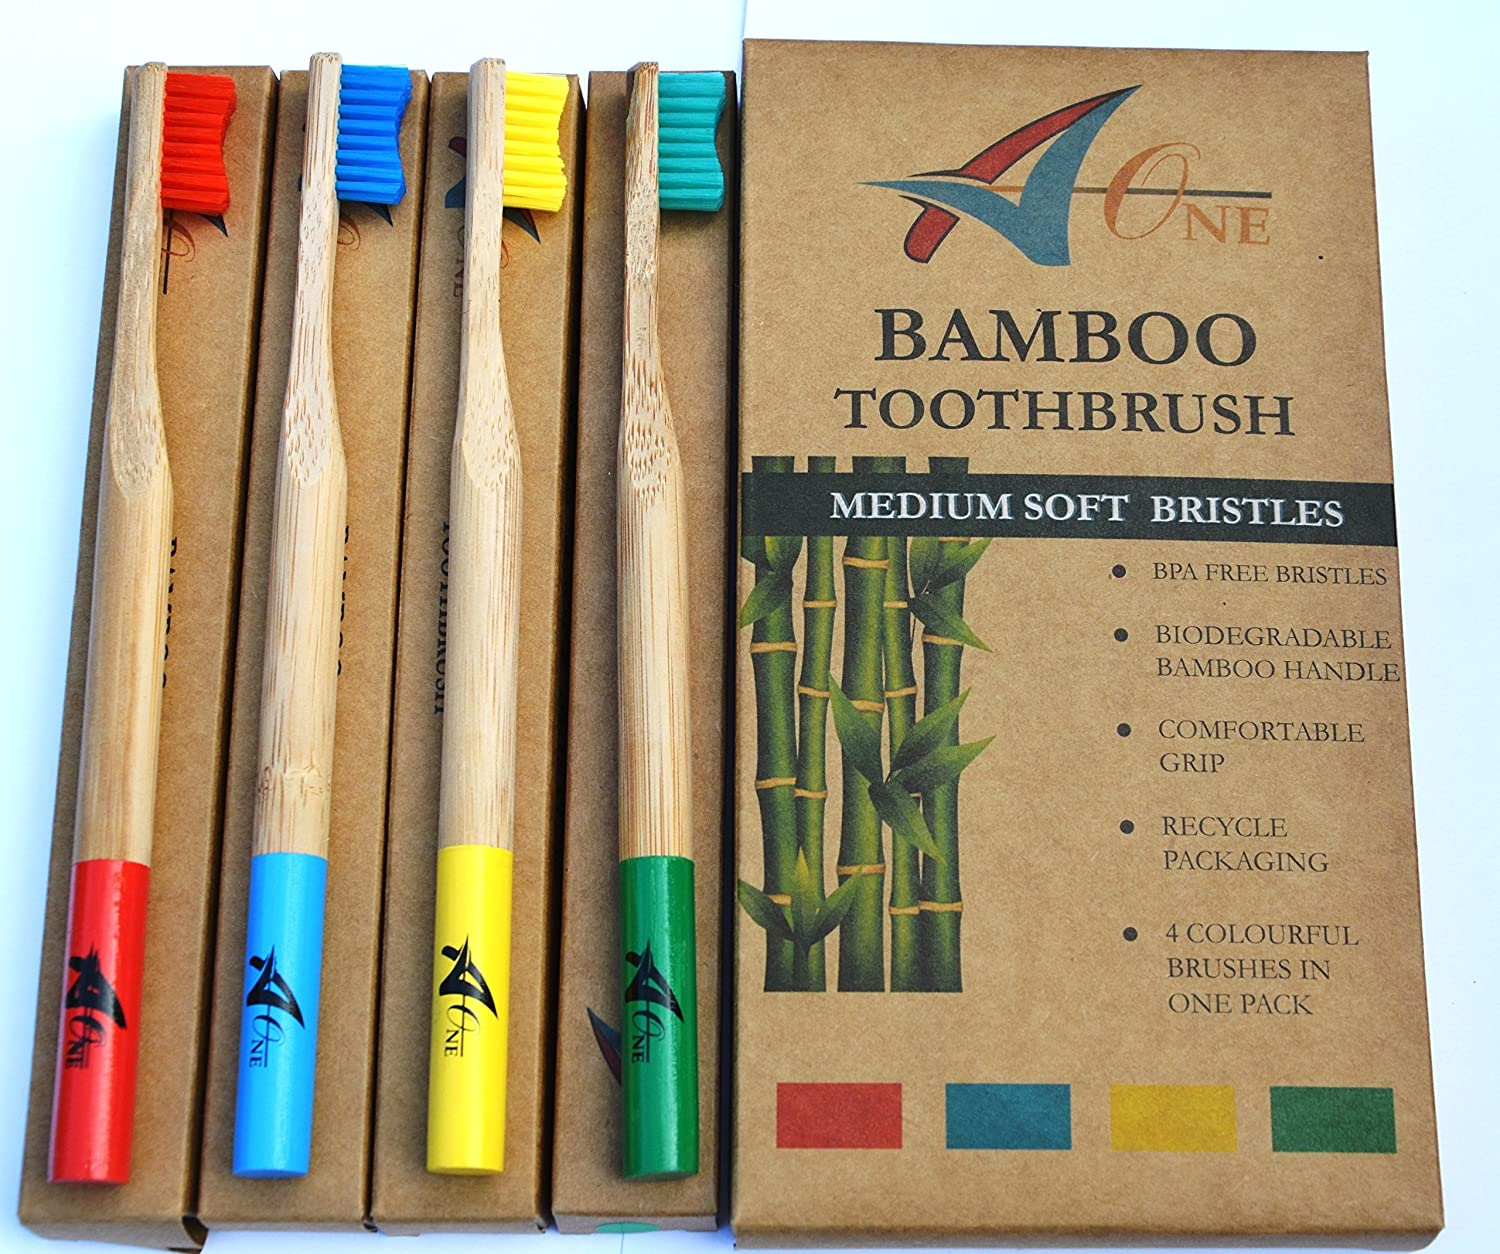 Premium Bamboo Toothbrushes. Meticulously Crafted With Medium Bristles – Bpa Free, Biodegradable, Dental Care For Entire Family, Pack Of 4, In Rainbow Colours. Also Available In White And Charcoal Bristles. by Amazon